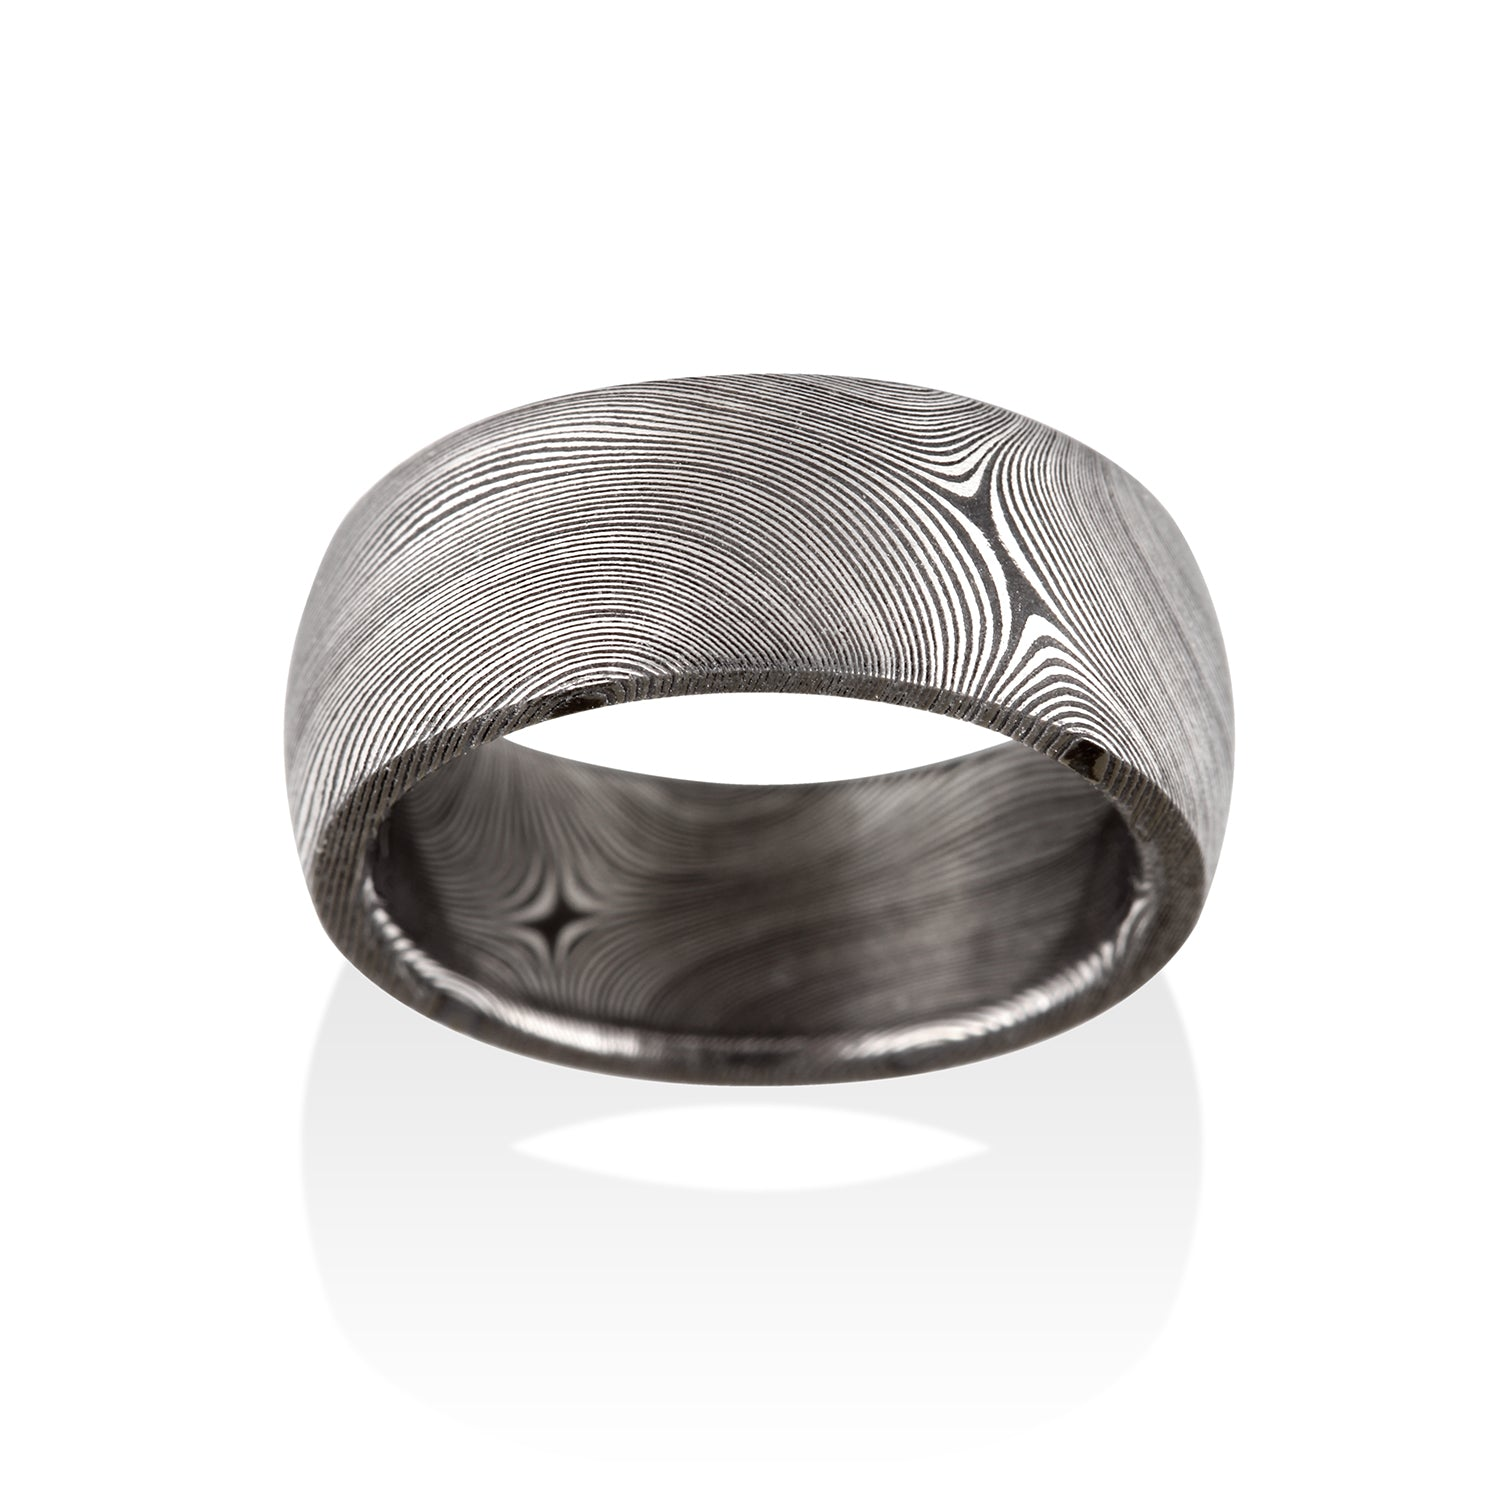 Starlight Oxidized Damascus Steel Ring by Chris Ploof - Talisman Collection Fine Jewelers